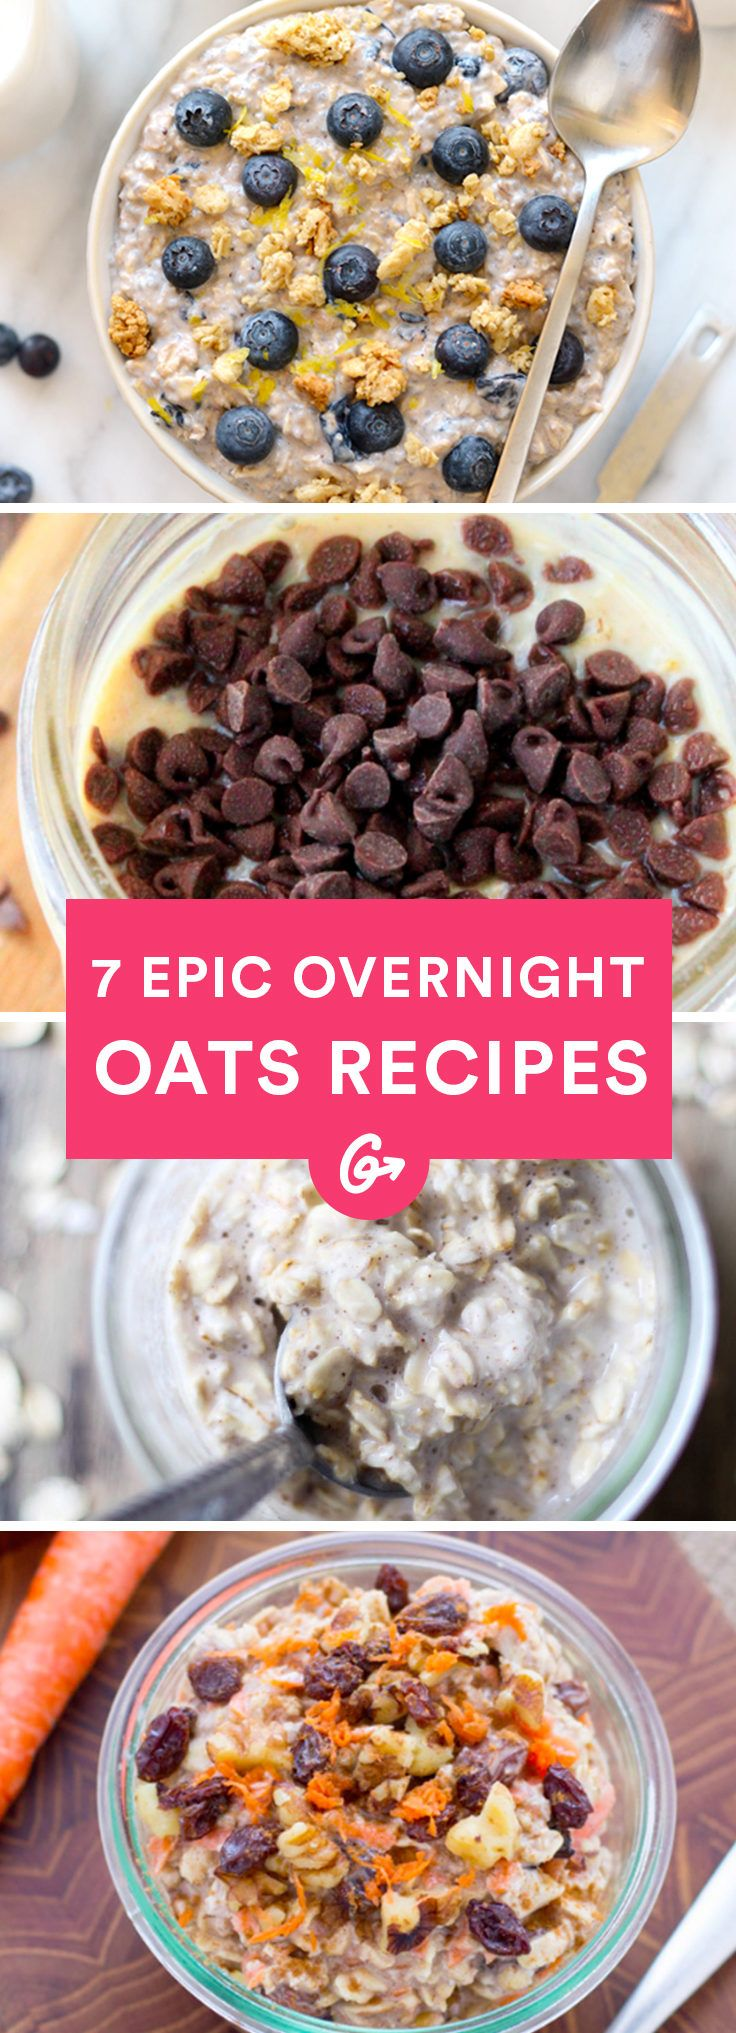 No time for a hot bowl of oats? Chill—they're just as good cold. #overnightoats #breakfast https://greatist.com/eat/overnight-oats-recipes-that-make-breakfast-a-breeze